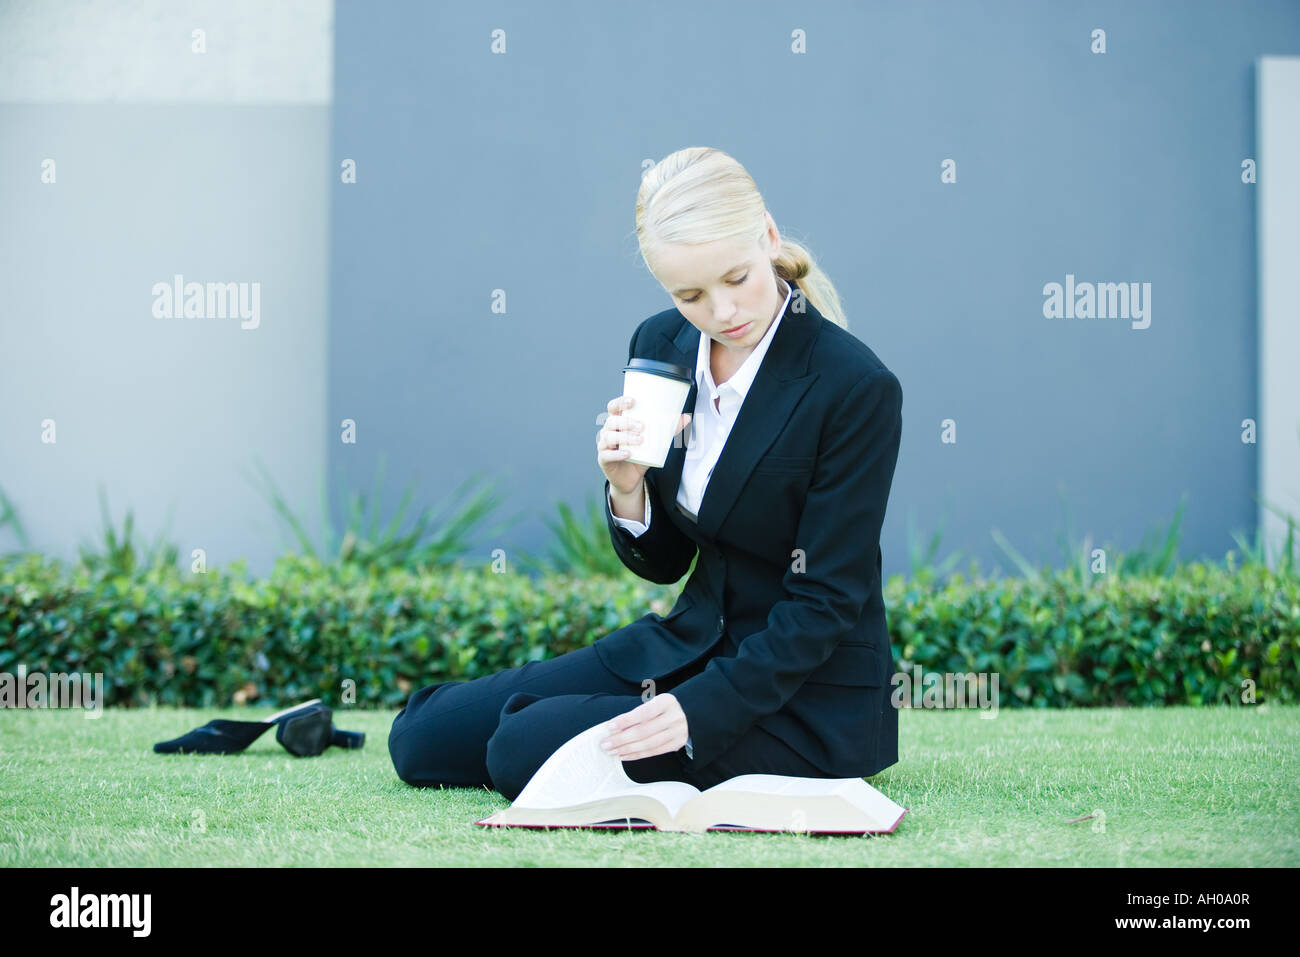 Young businesswoman sitting on the ground outdoors, reading book, holding hot beverage - Stock Image